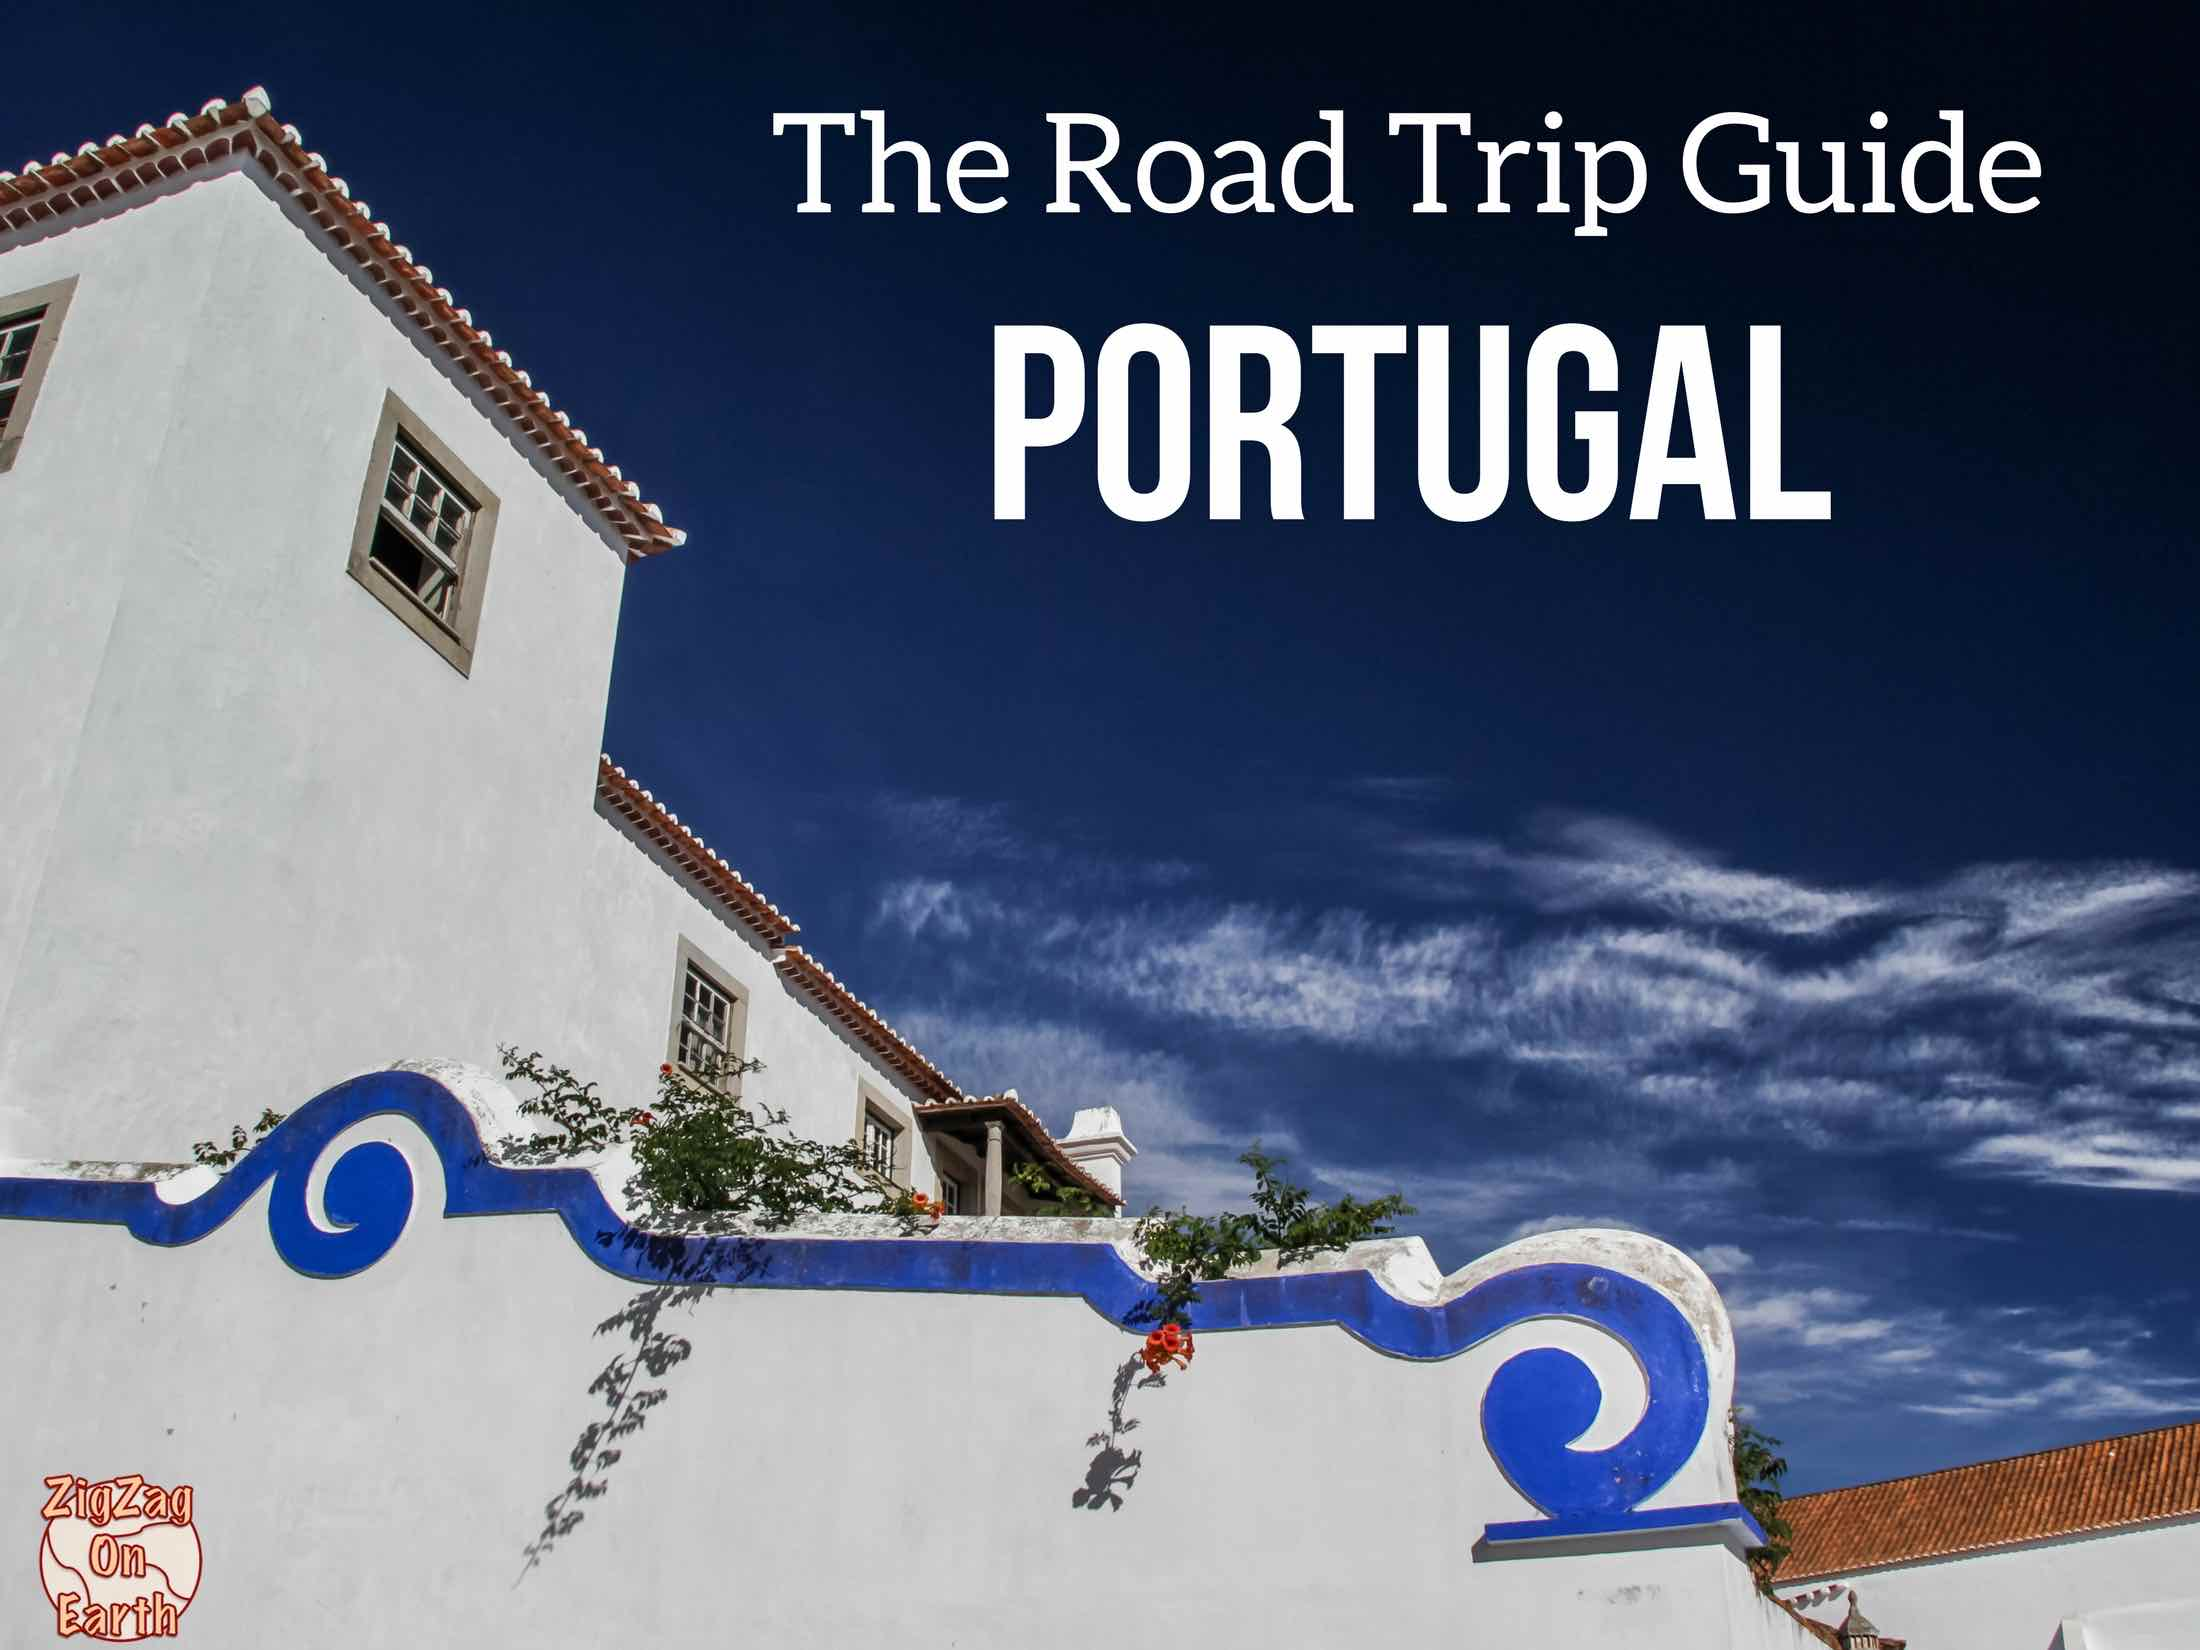 Portugal road trip guide ebook cover